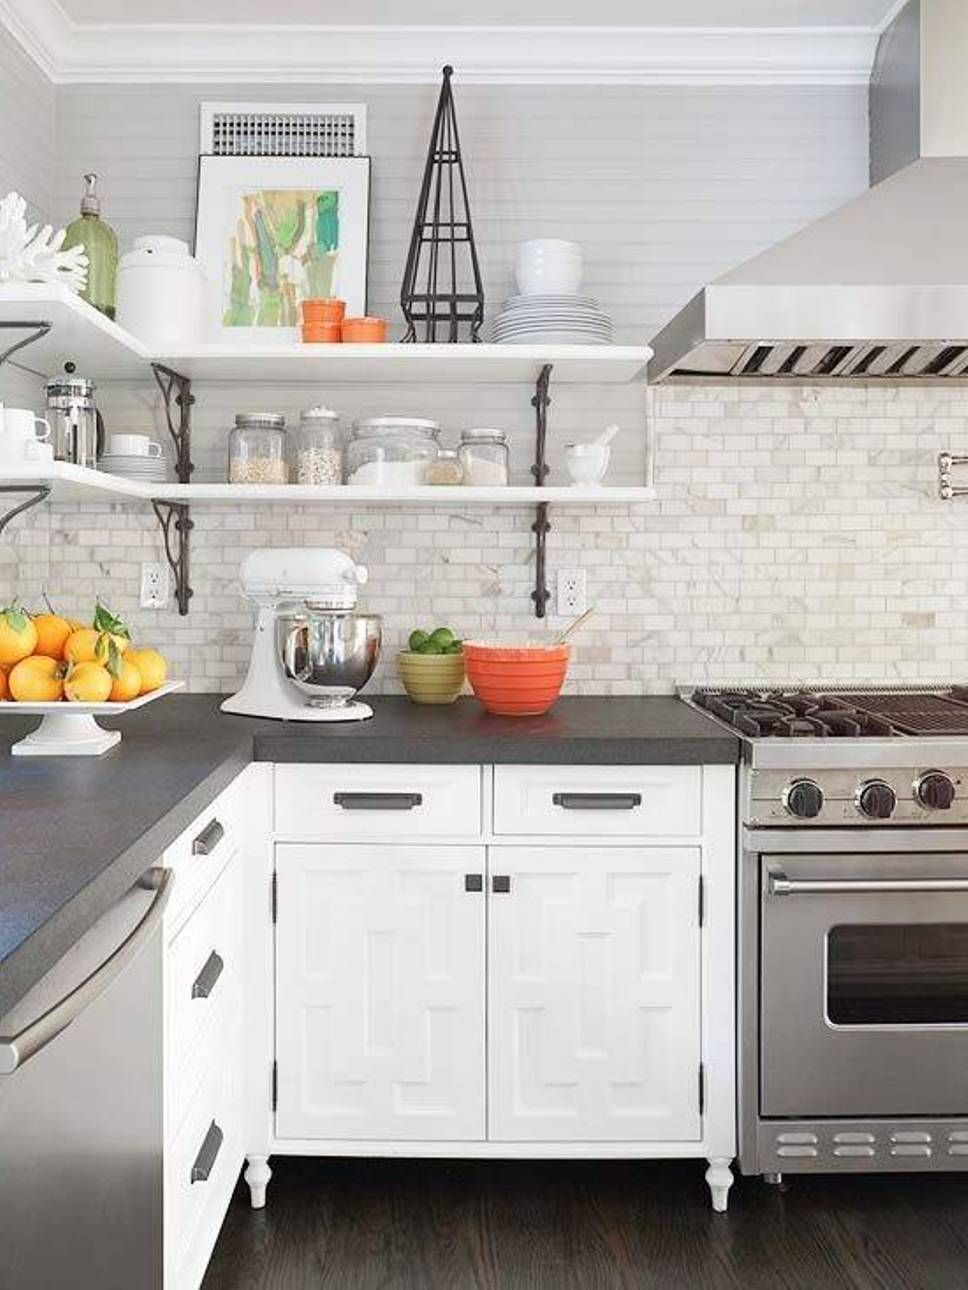 Countertop Color In Grey And White Kitchen for